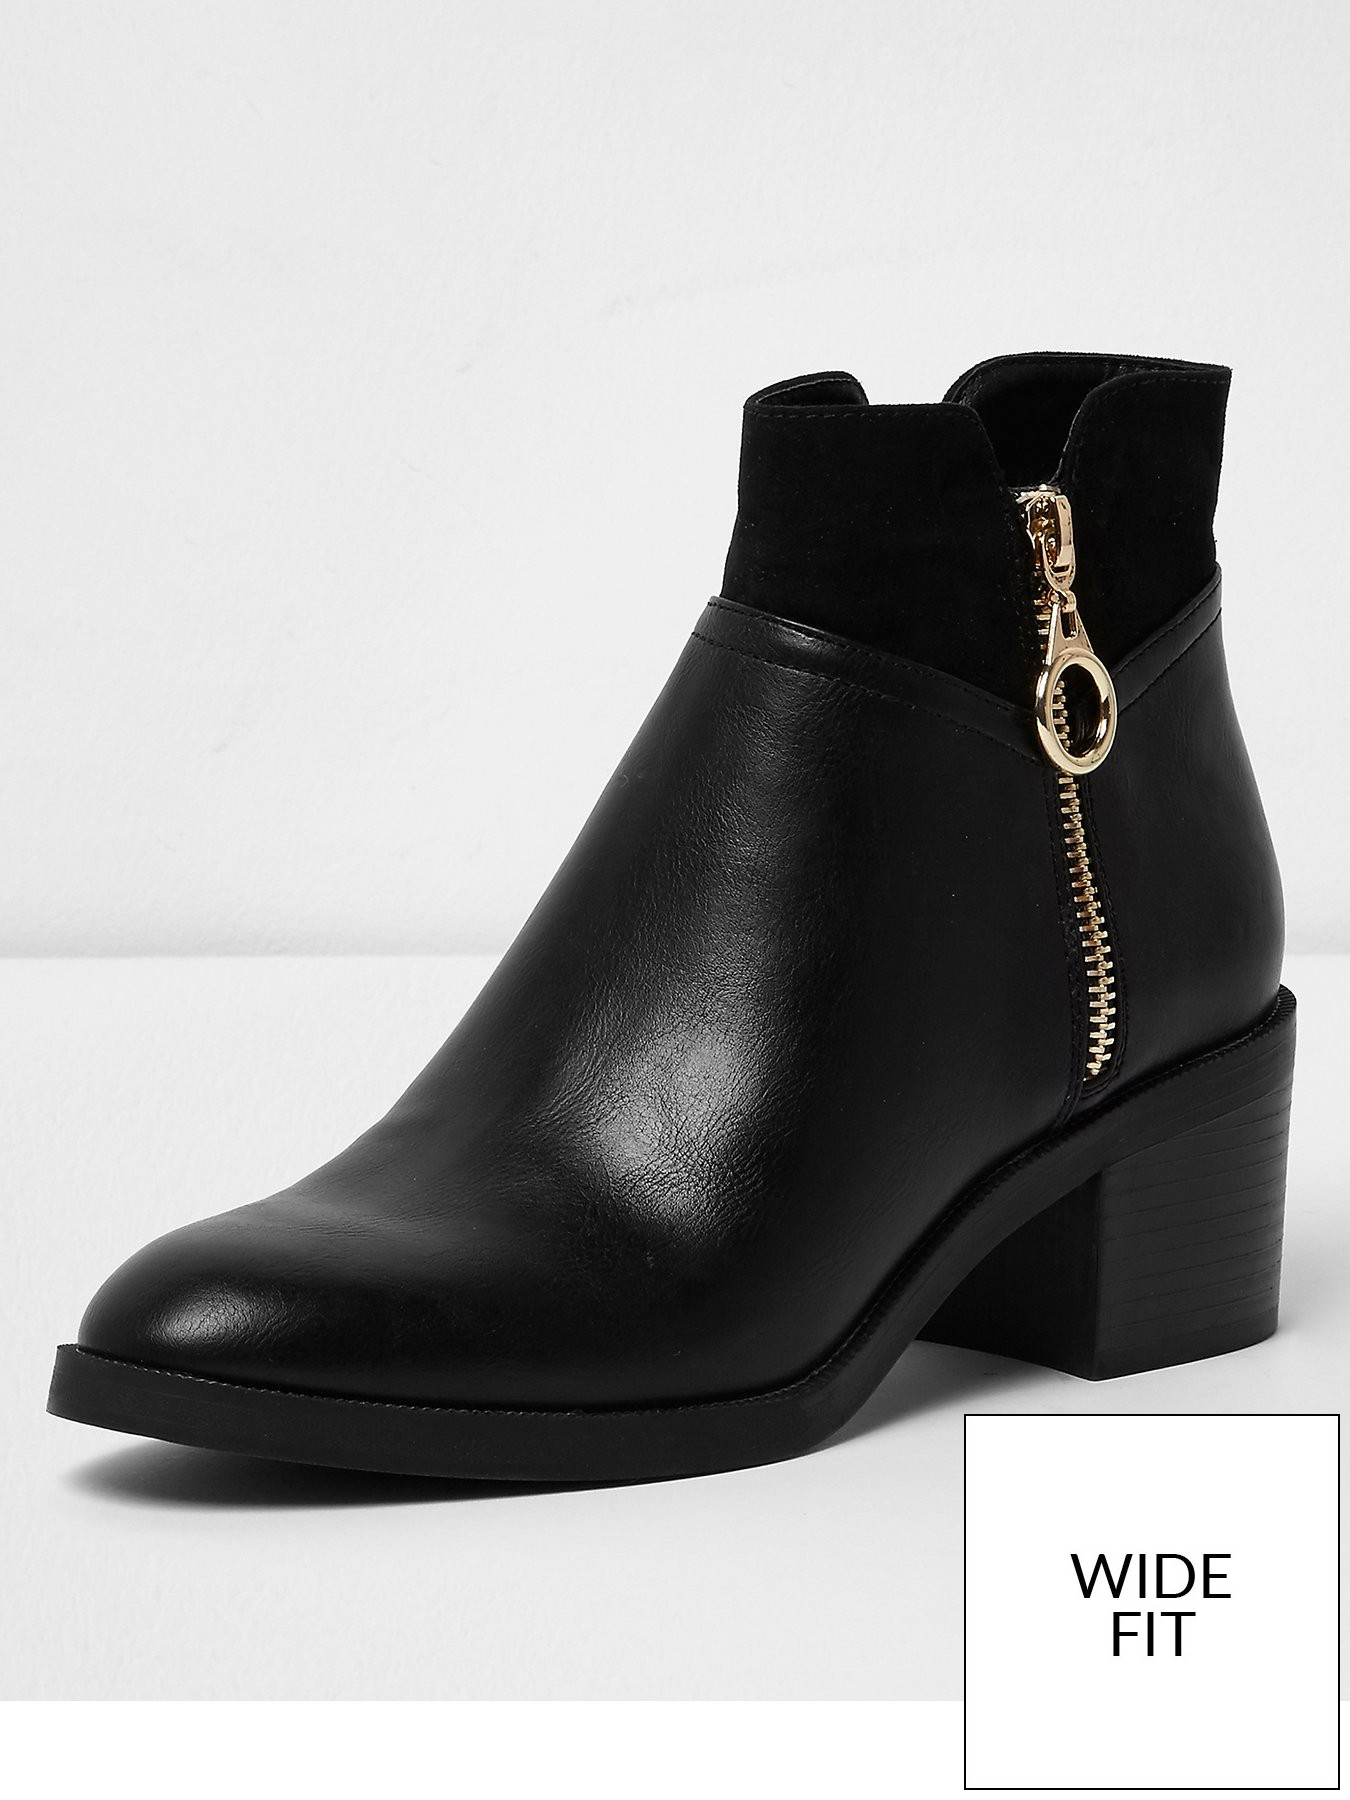 River Island River Island Wide Fit Block Heel Boot Black 1600209558 Women's Shoes River Island Boots